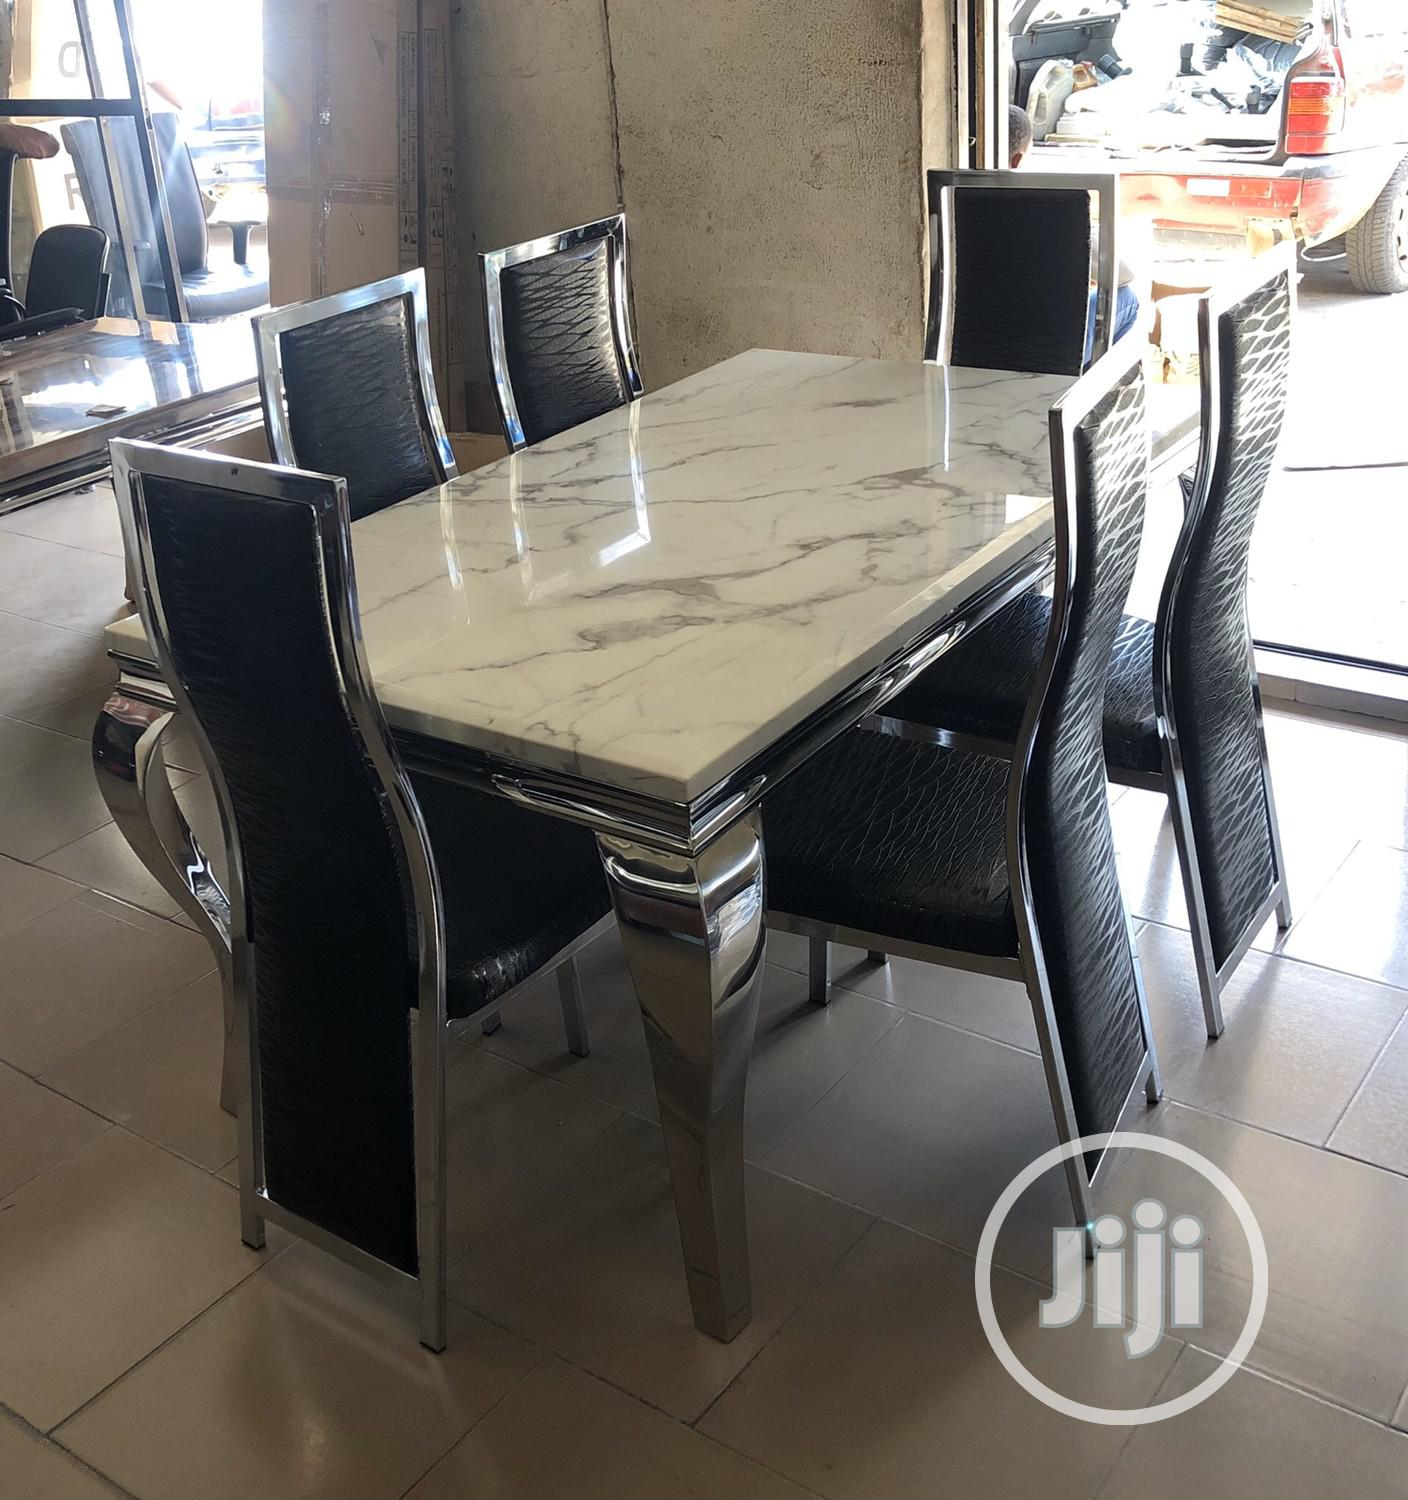 Archive Marble Dining Table In Apapa Furniture Valentine Obum Jiji Ng